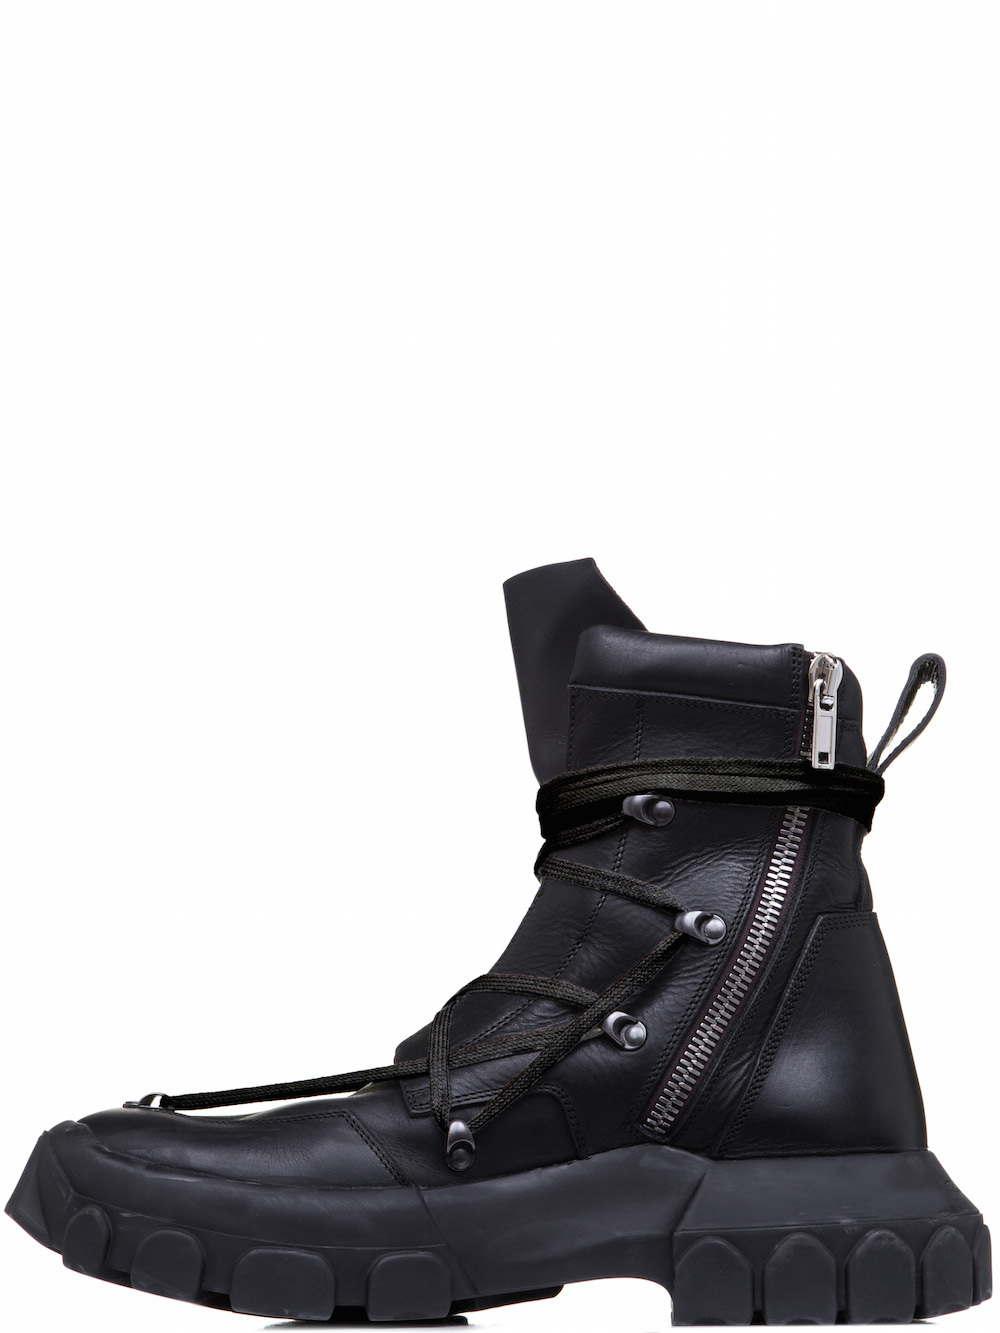 RICK OWENS OFF-THE-RUNWAY LACEUP HIKING BOOTS IN BLACK